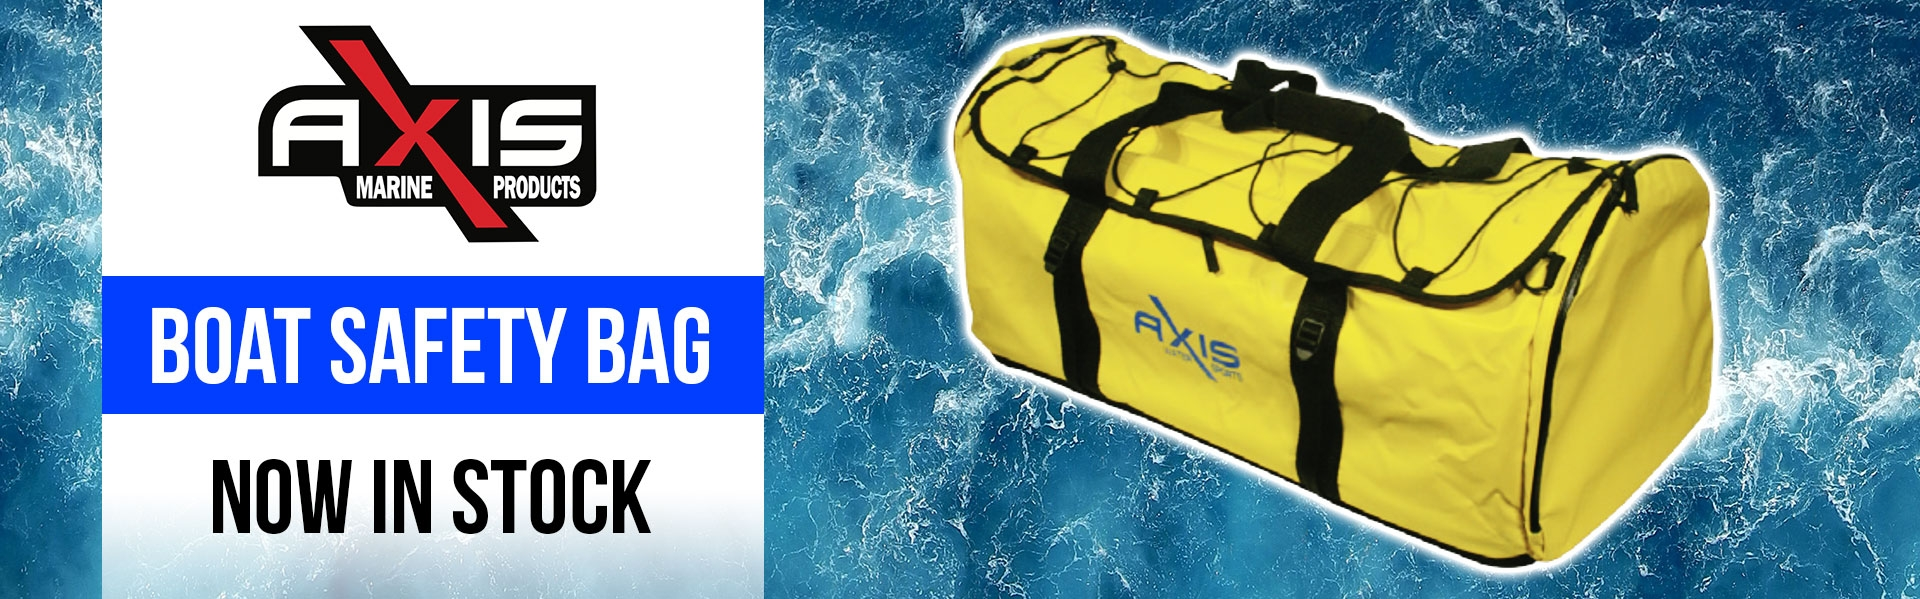 AXIS 90L SAFETY BAG